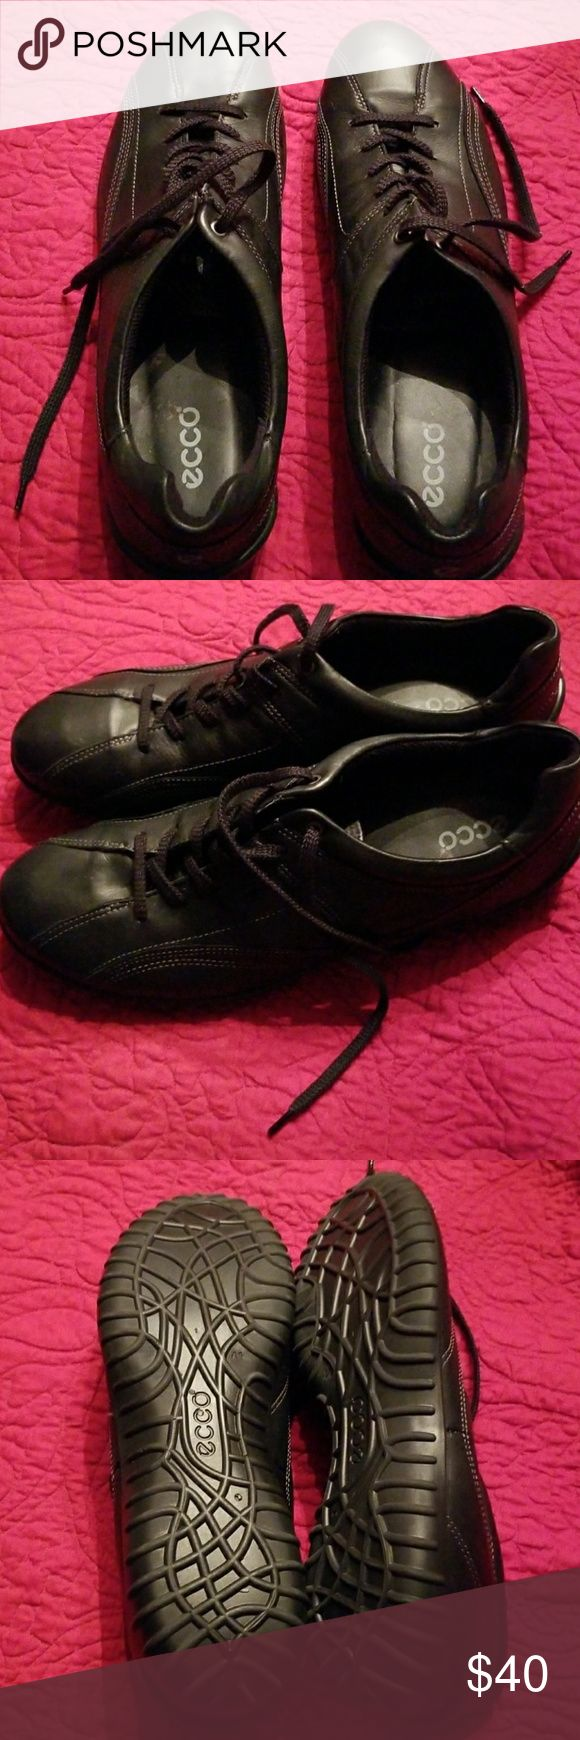 Like New Ecco Charm Black Leather Shoes This is a pair of Like New Ecco Charm Black Leather Shoes that lace up. Even the black shoe laces look unused. My mom bought them for comfort, along with 3-4 other pairs and then wasn't able to wear them. They have some top stitching which adds a little more style and so they are good with casual and dress pants. Great if you are on your feet a lot!  She wore 9 1/2 Slim in most shoes, and these are like a Size 10. Made in Slovakia, Ecco shoes are…